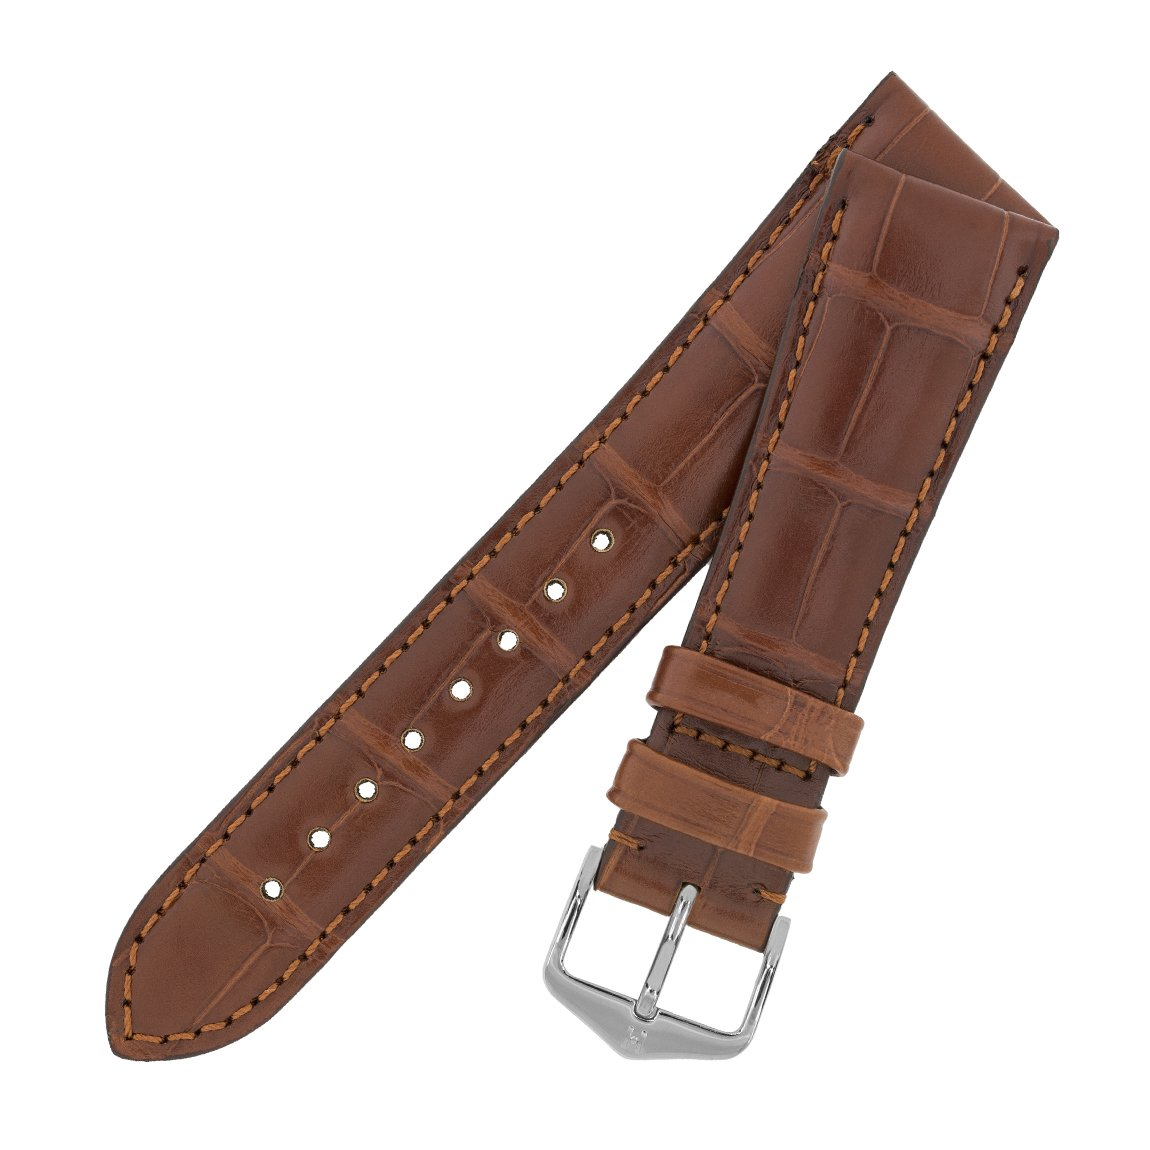 3e1cd2298 Hirsch London Matt Alligator Leather Watch Strap with Buckle in Gold Brown  (20mm (16mm Buckle) L, Rose Gold Buckle): Amazon.co.uk: Watches